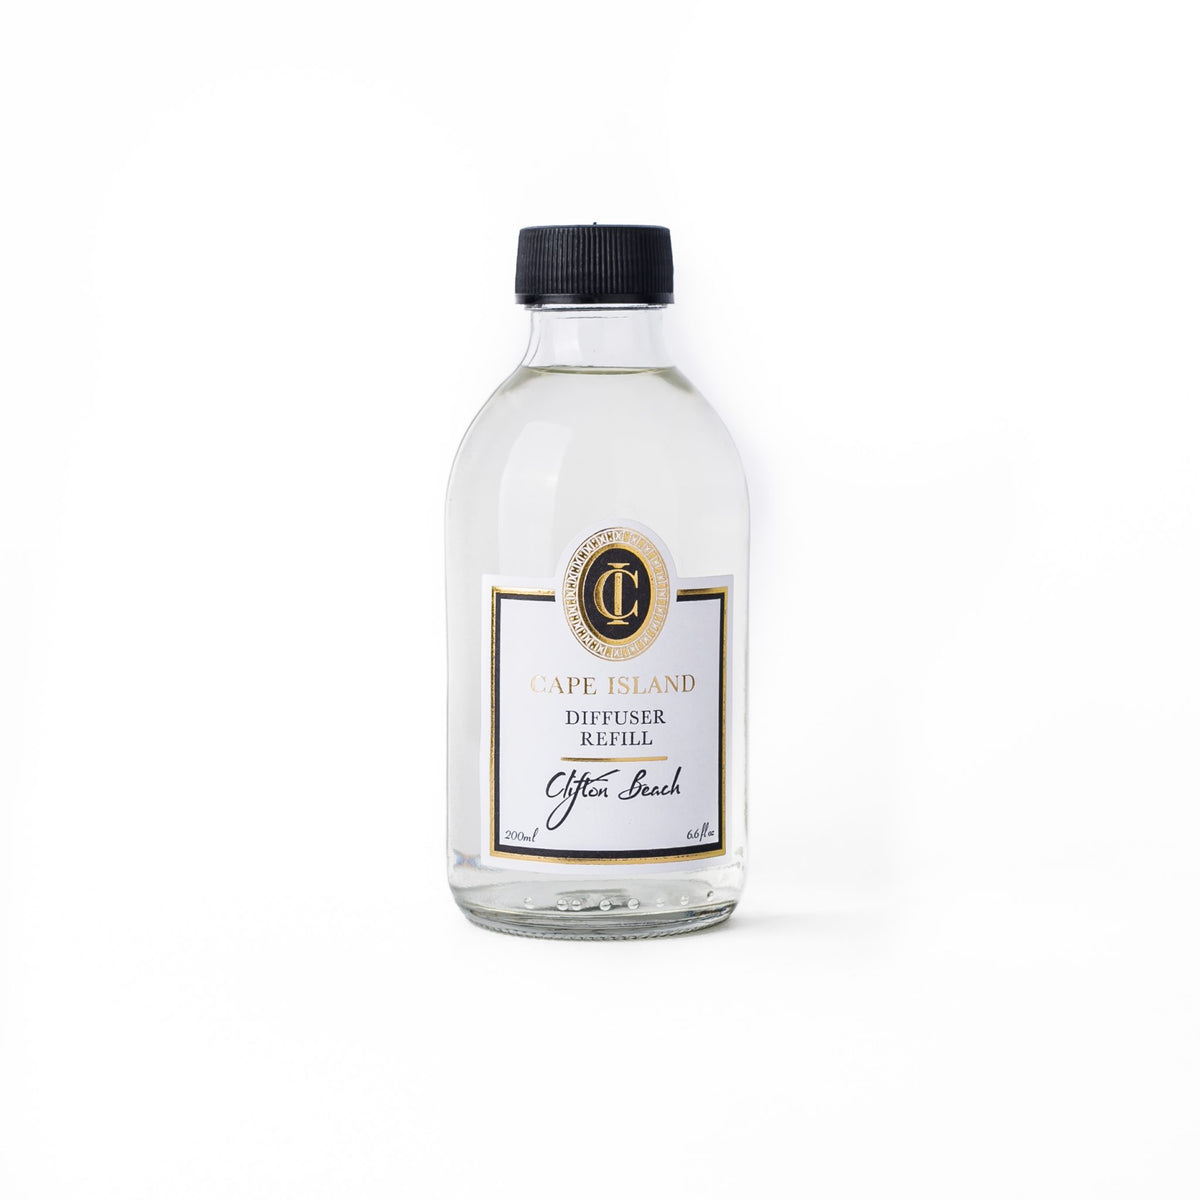 Clifton Beach Diffuser Refill 200ml freeshipping - Beautiful Spaces Store